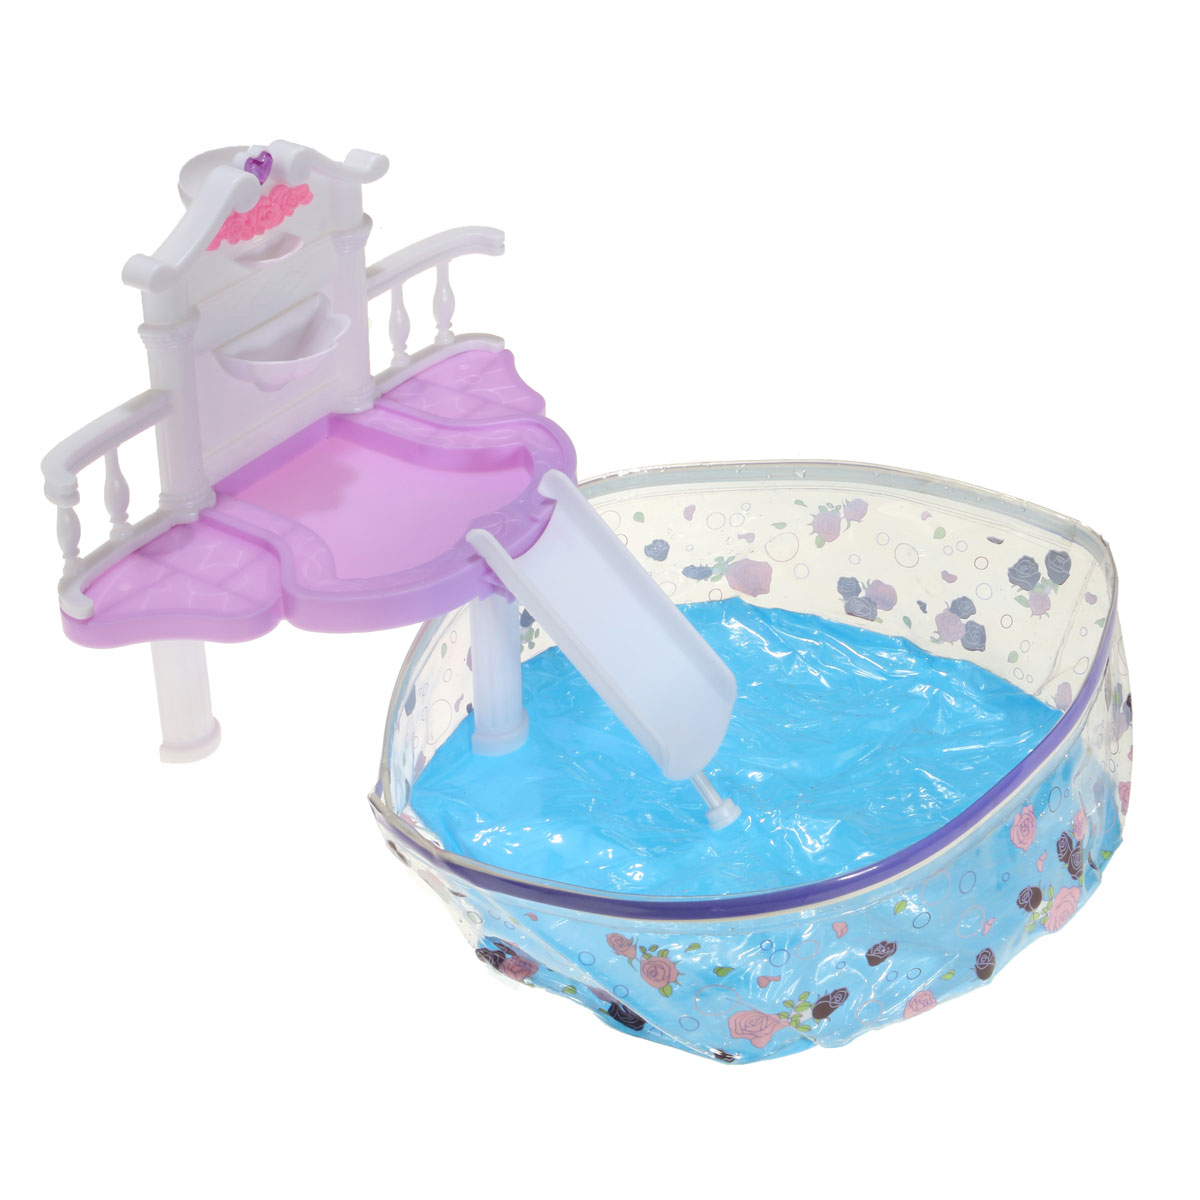 Waterfall Fantasy Swimming Pool For Doll Accessories Kit Toy Alex Nld